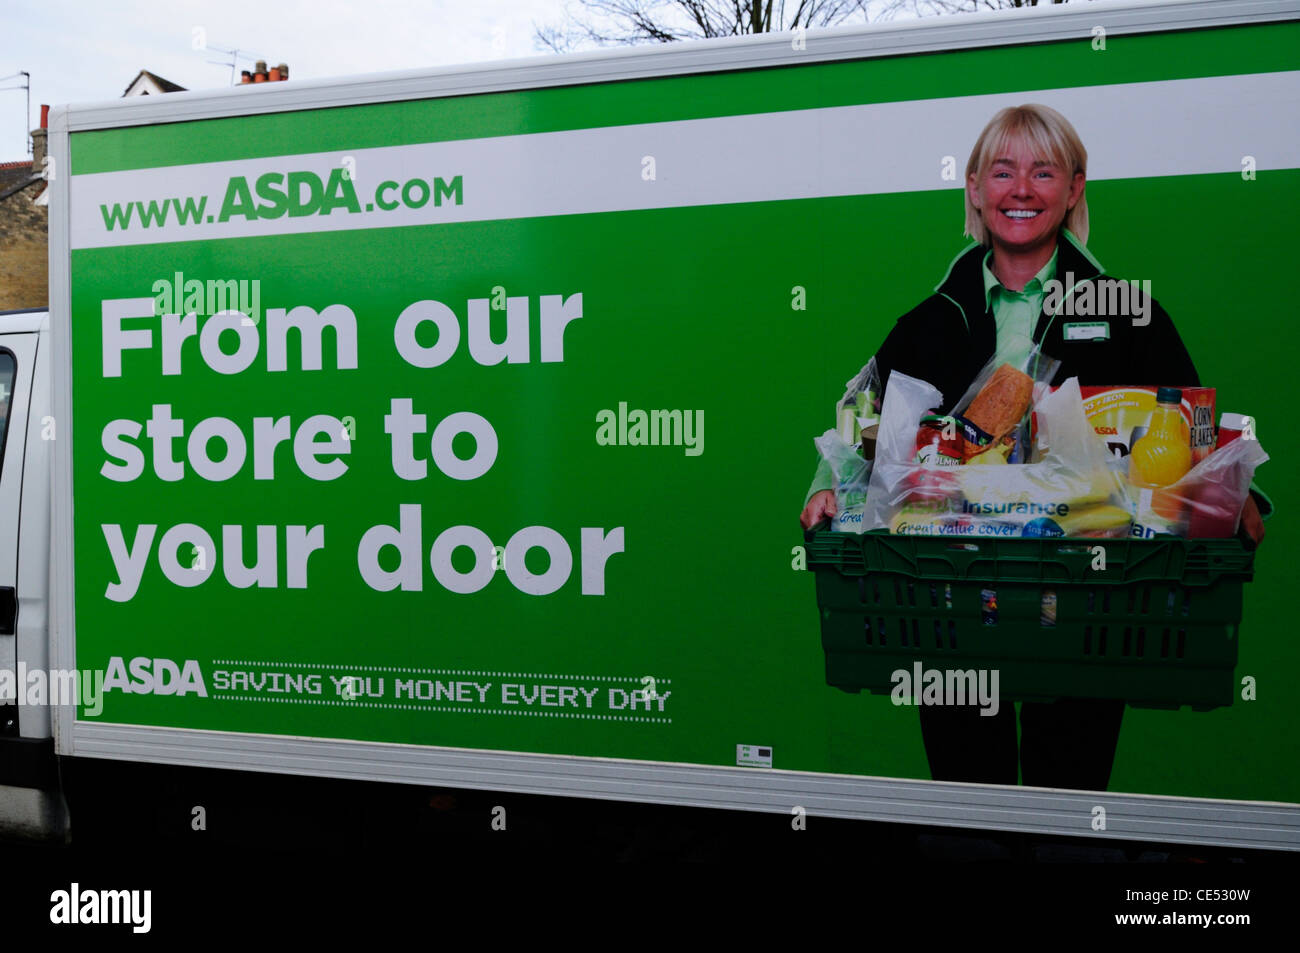 Asda Supermarket Shopping Home Delivery Van Cambridge